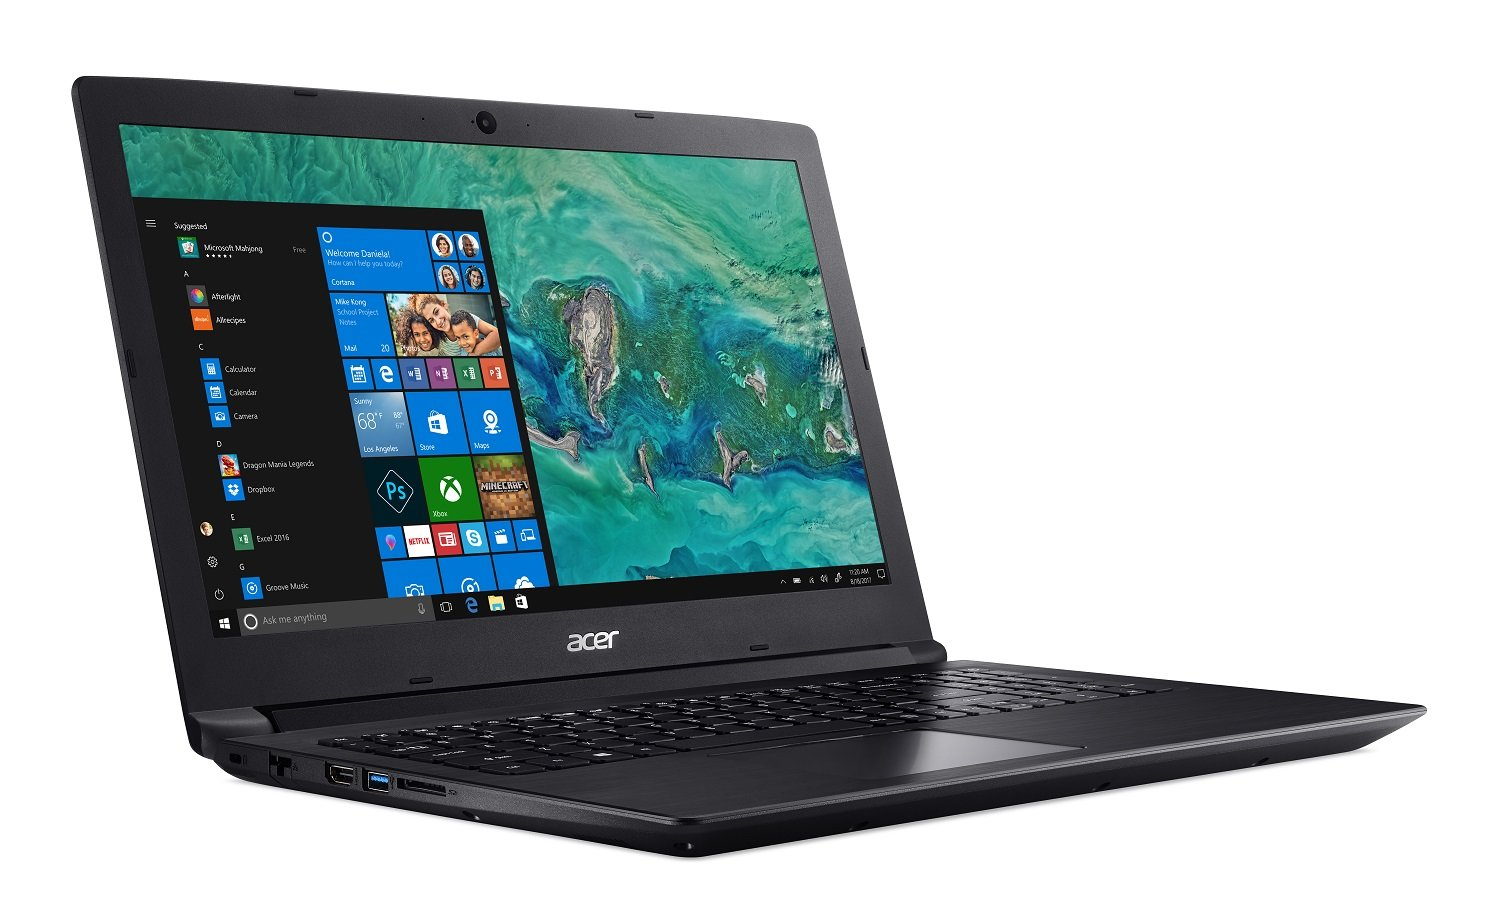 "Acer Aspire 3 A315-41-R001, 15.6"" Full HD, AMD Ryzen 5 2500U, 8GB DDR4, 256GB SSD, Windows 10 Home, Black"